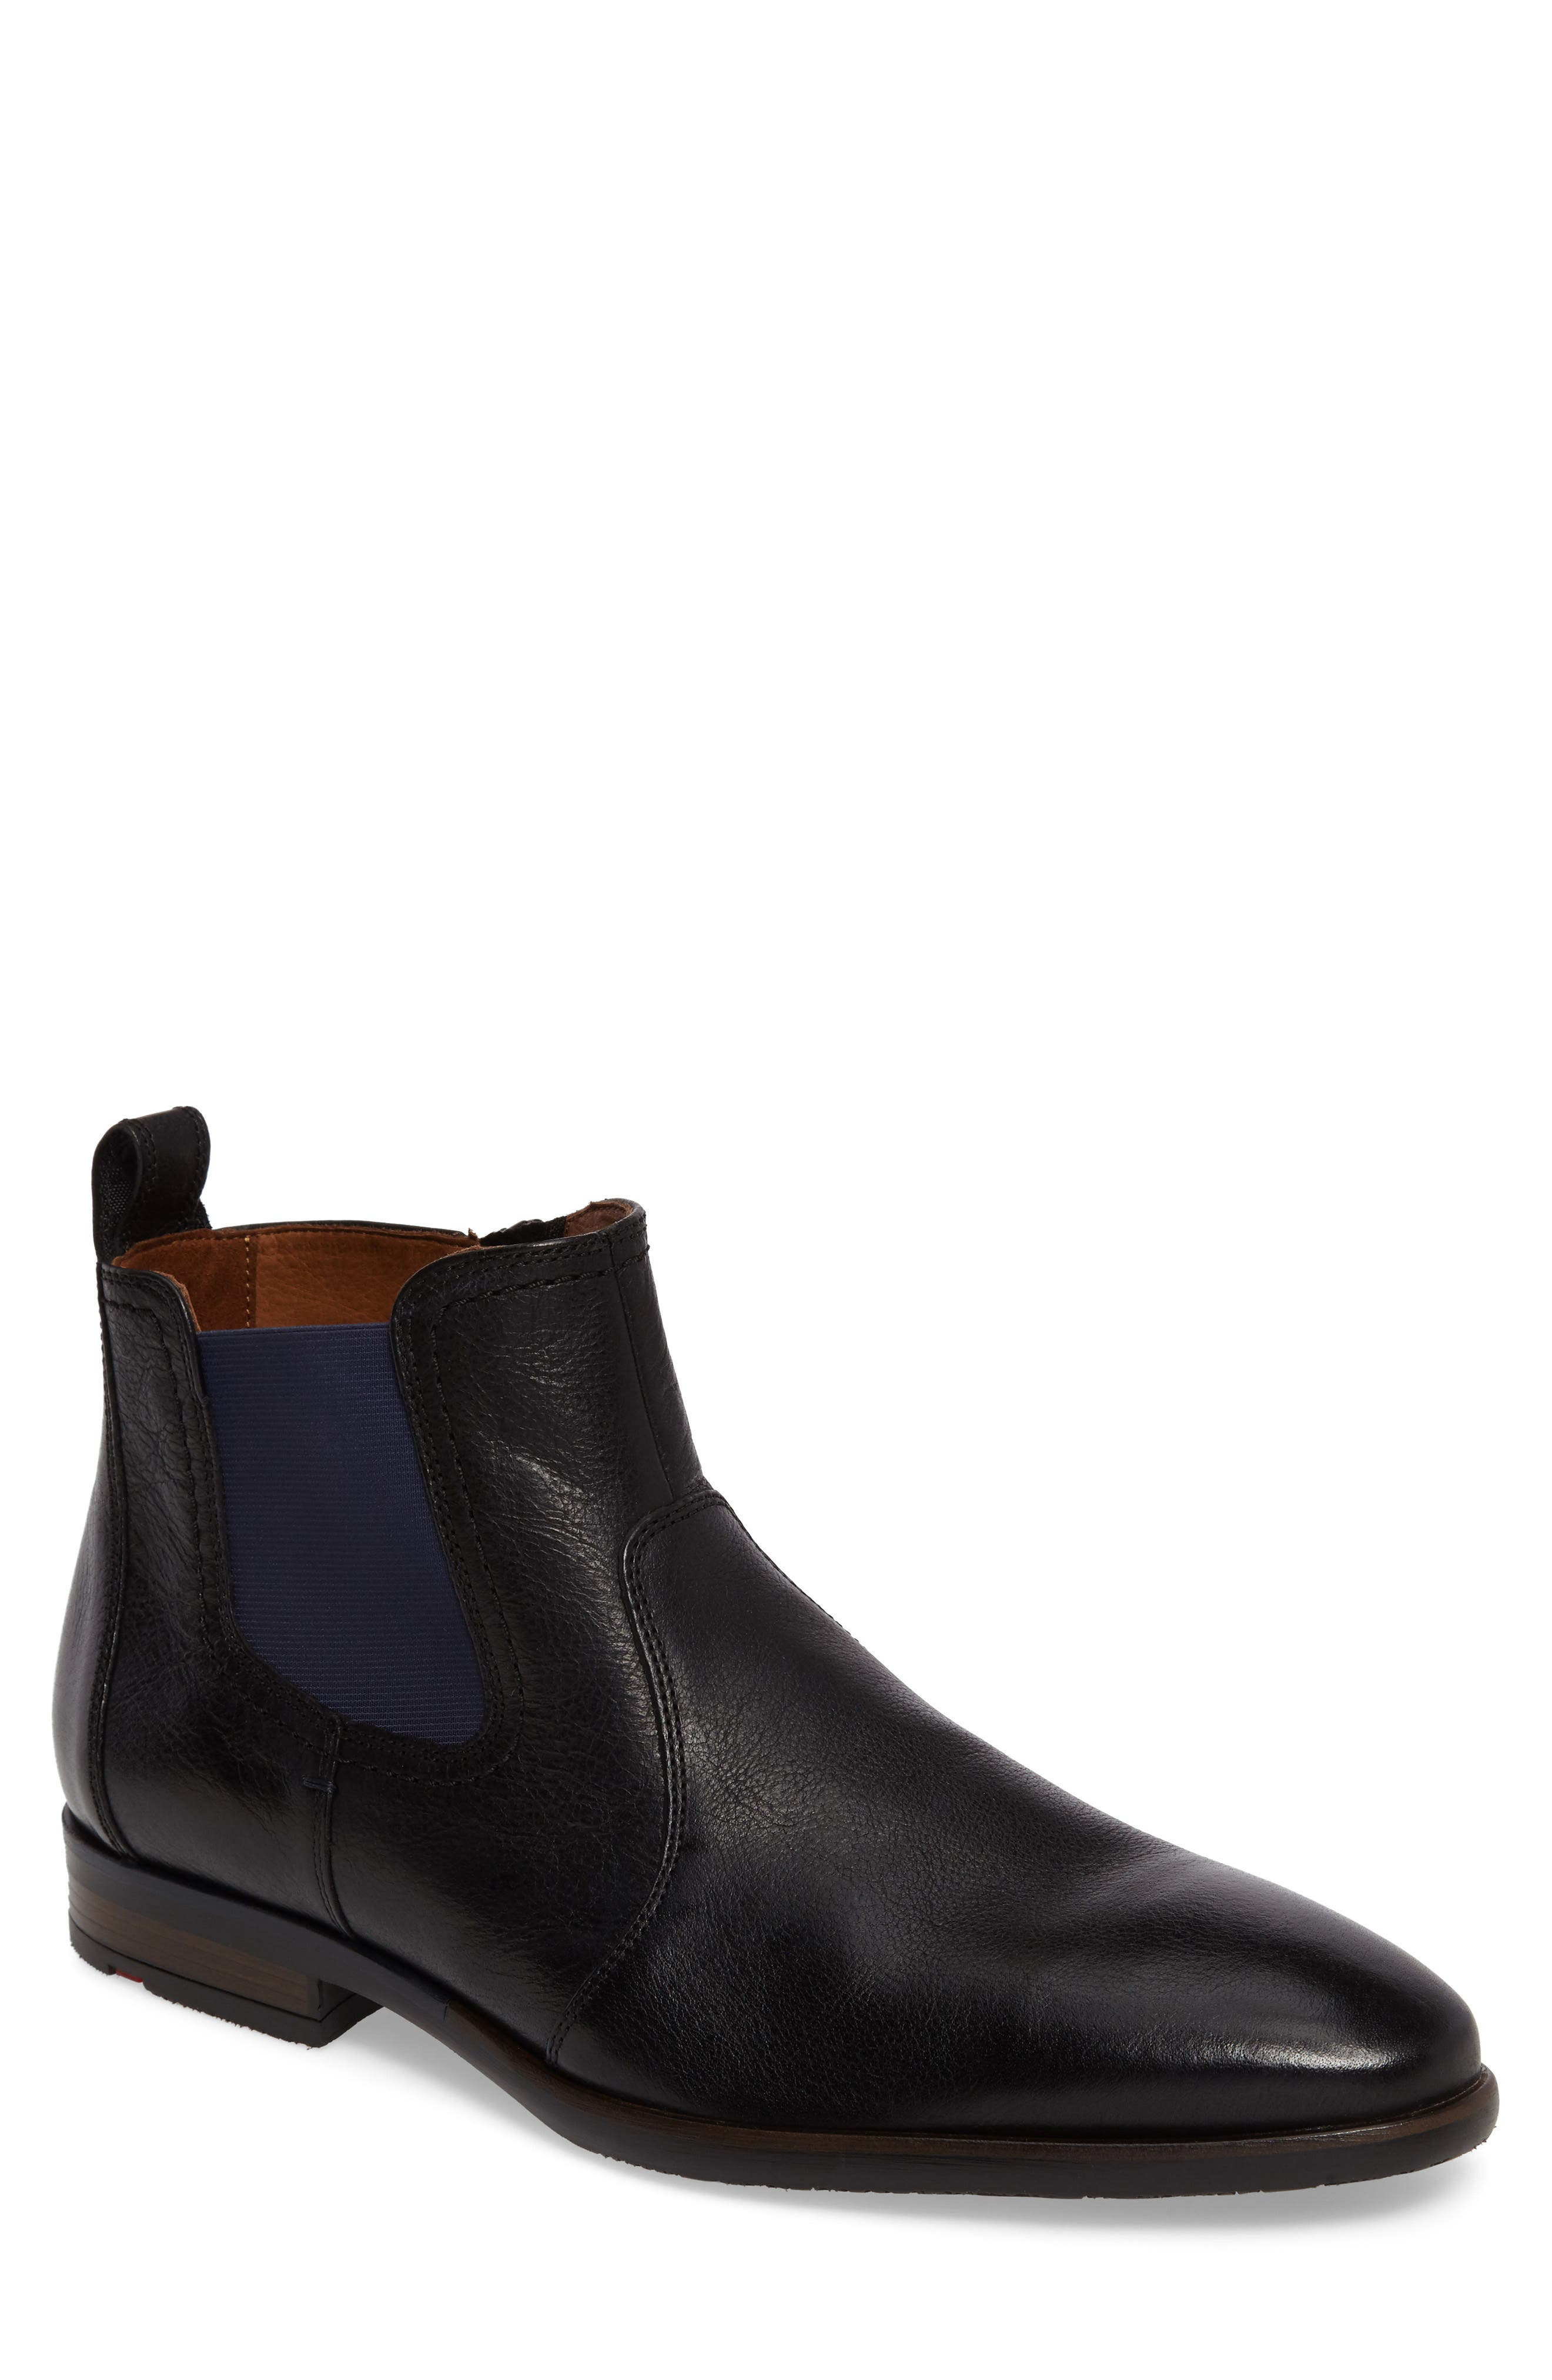 Dylan Chelsea Boot,                             Main thumbnail 1, color,                             001